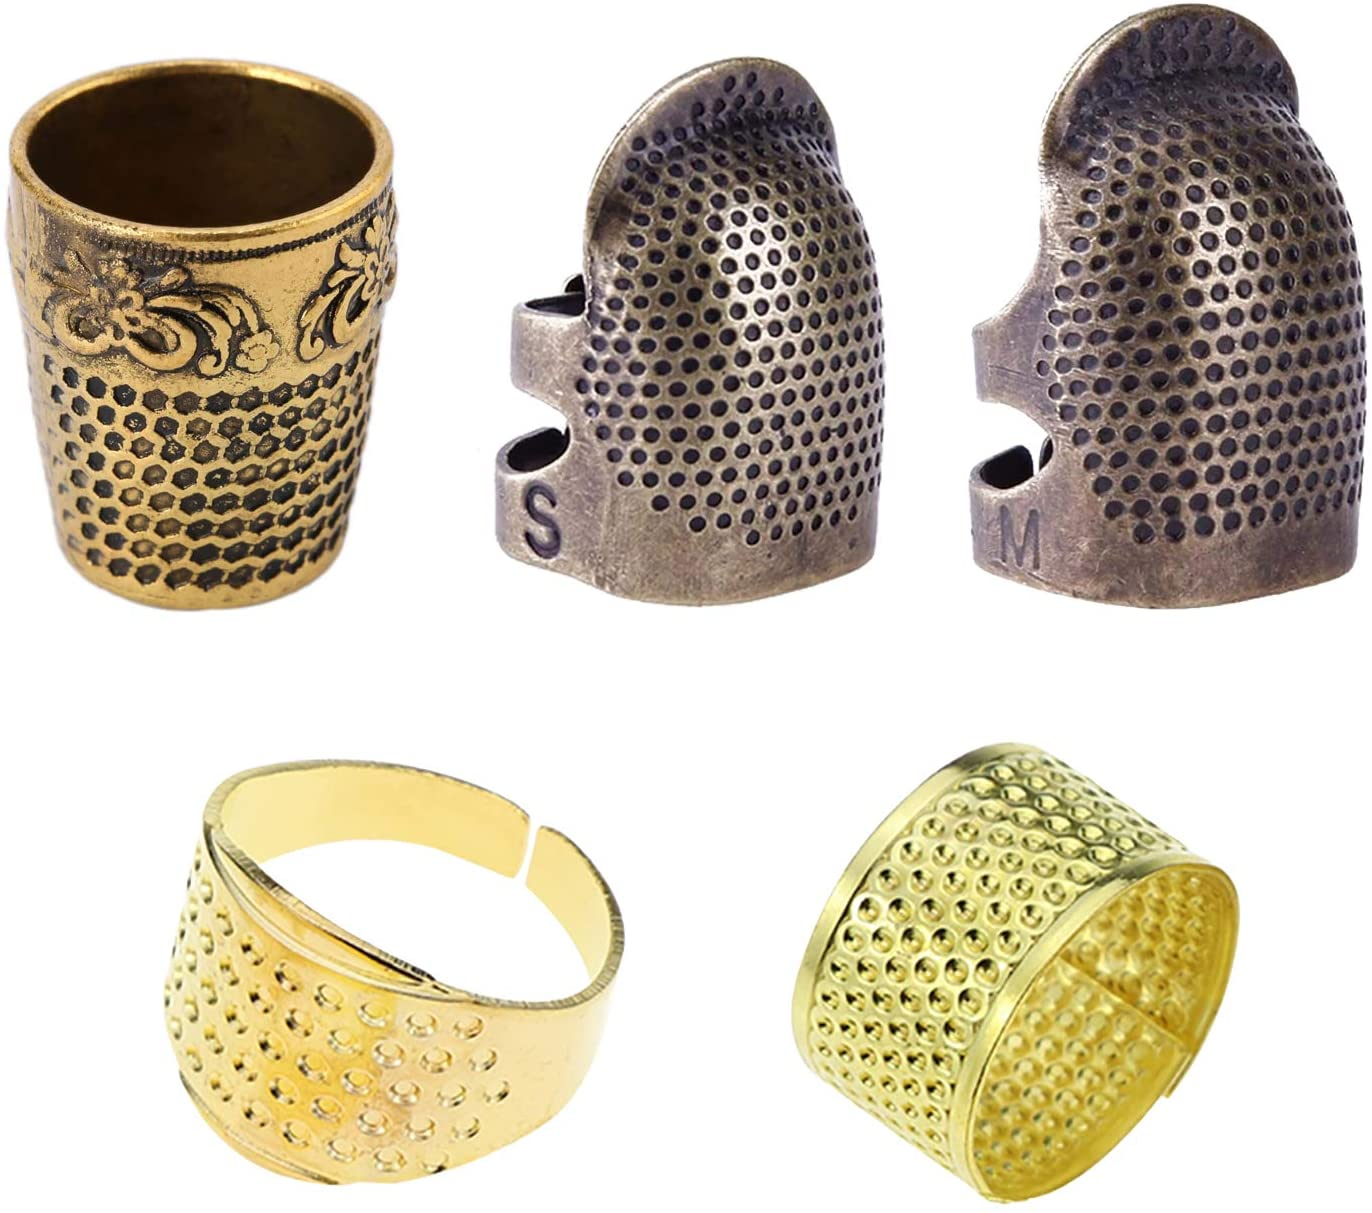 5 Pcs Sewing Thimble, Adjustable Metal Copper Sewing Finger Protector Shield Fingertip Sewing Quilting Craft Accessories